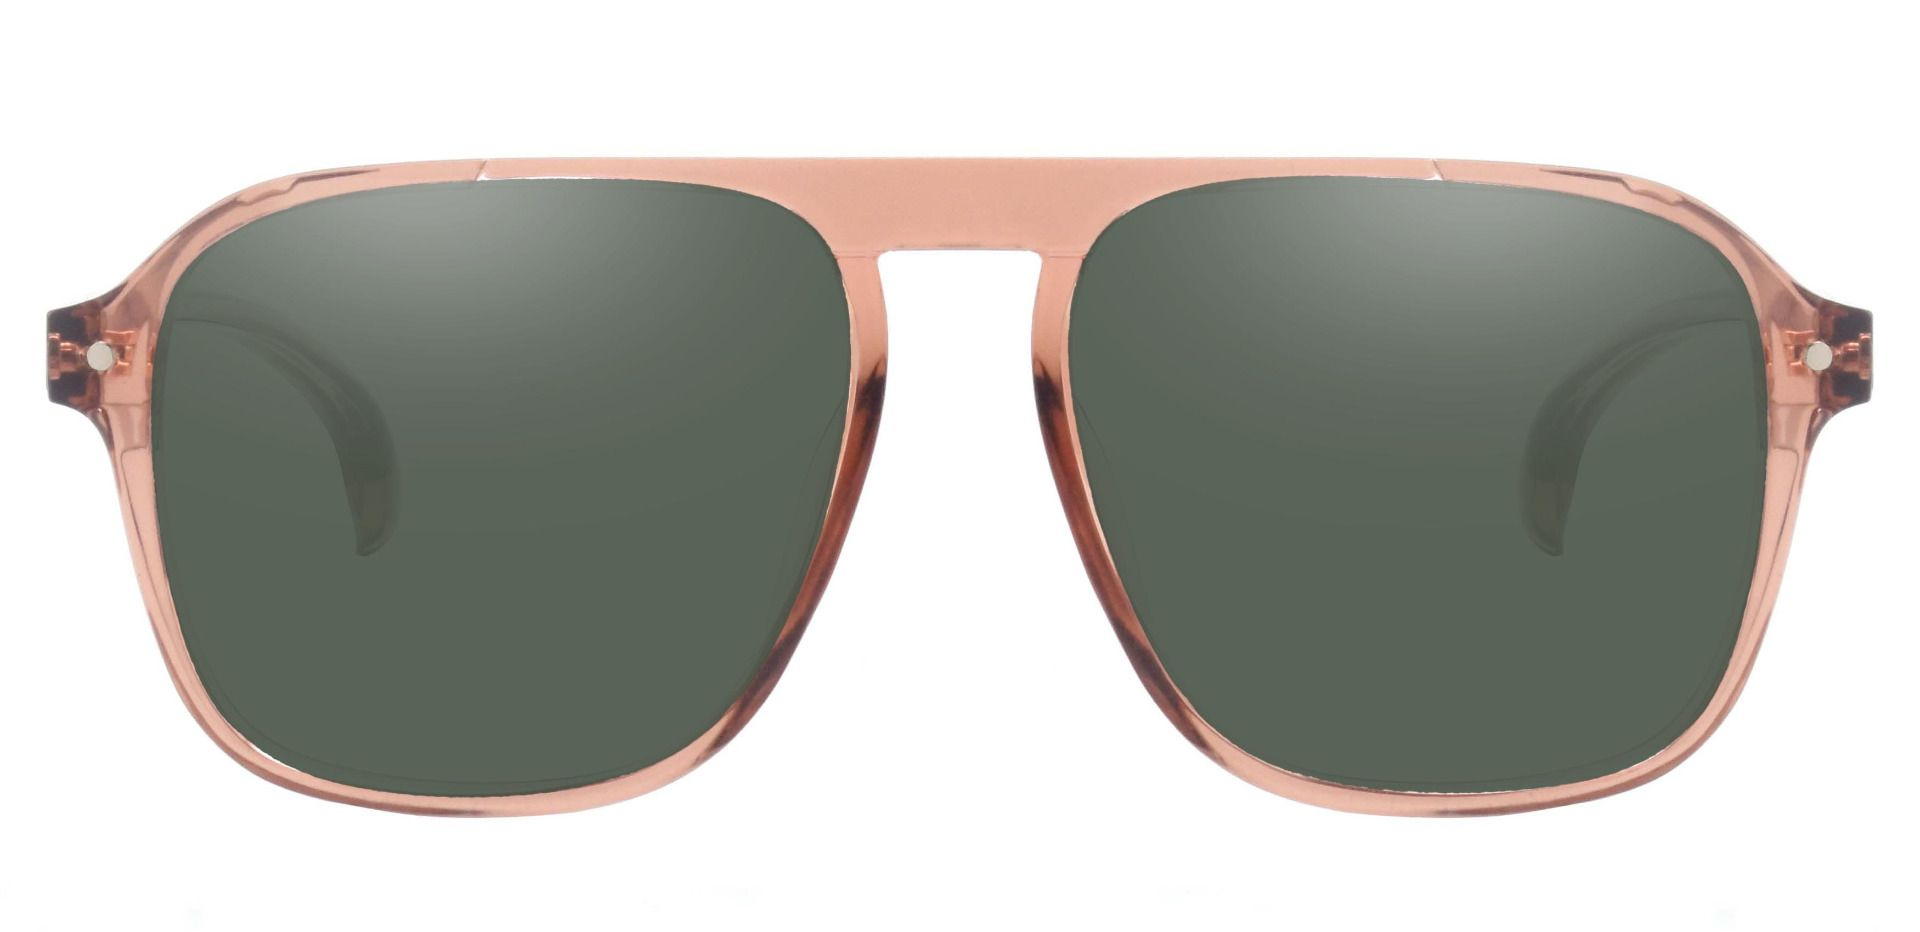 Gideon Aviator Non-Rx Sunglasses - Brown Frame With Green Lenses